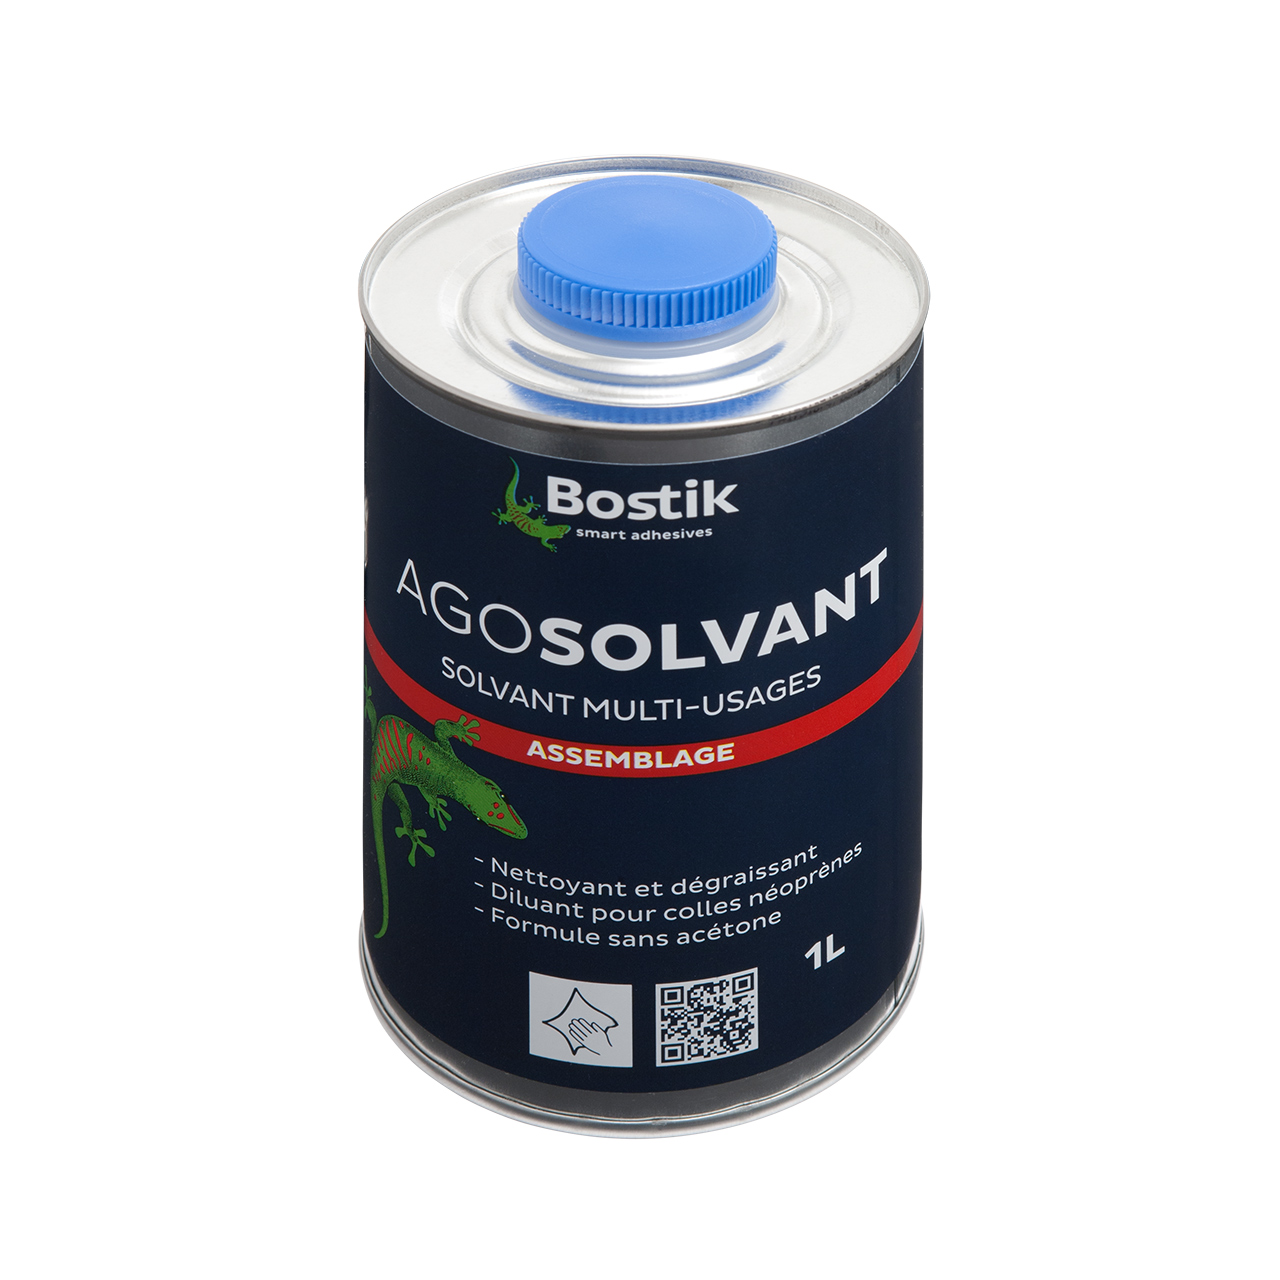 Bostik-thinner (tin), 1L